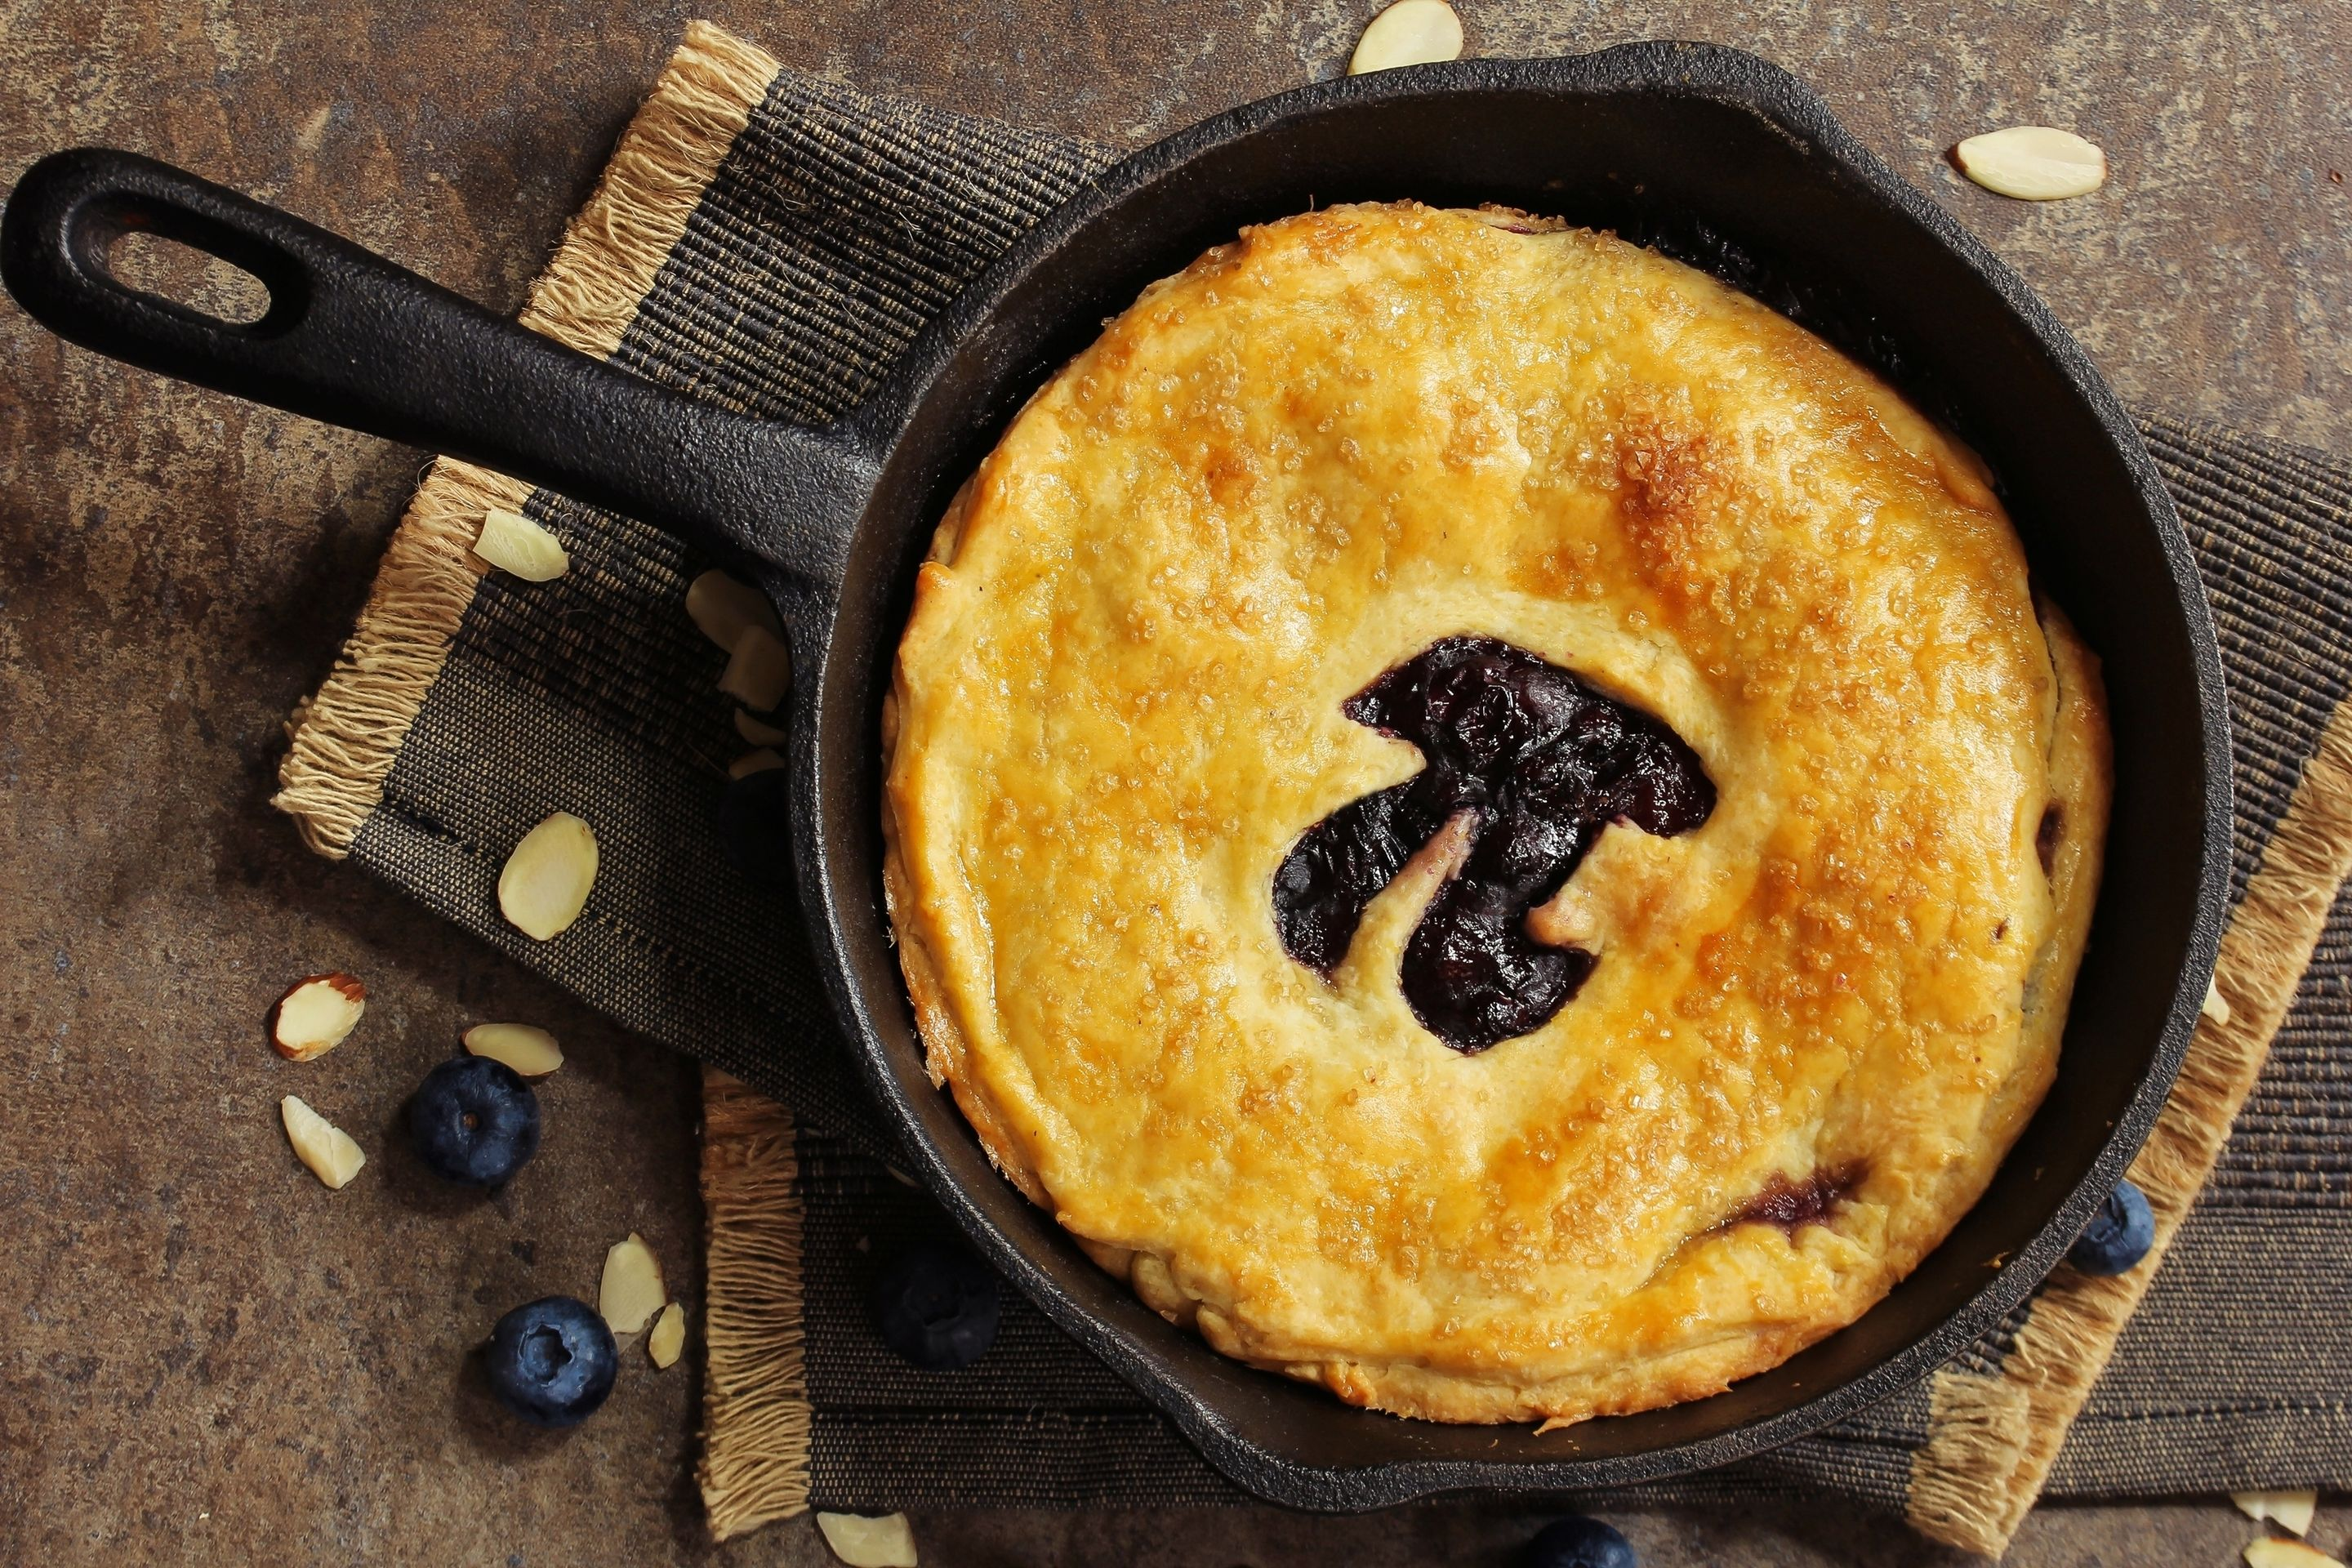 Get students interested in pi by serving some pie.